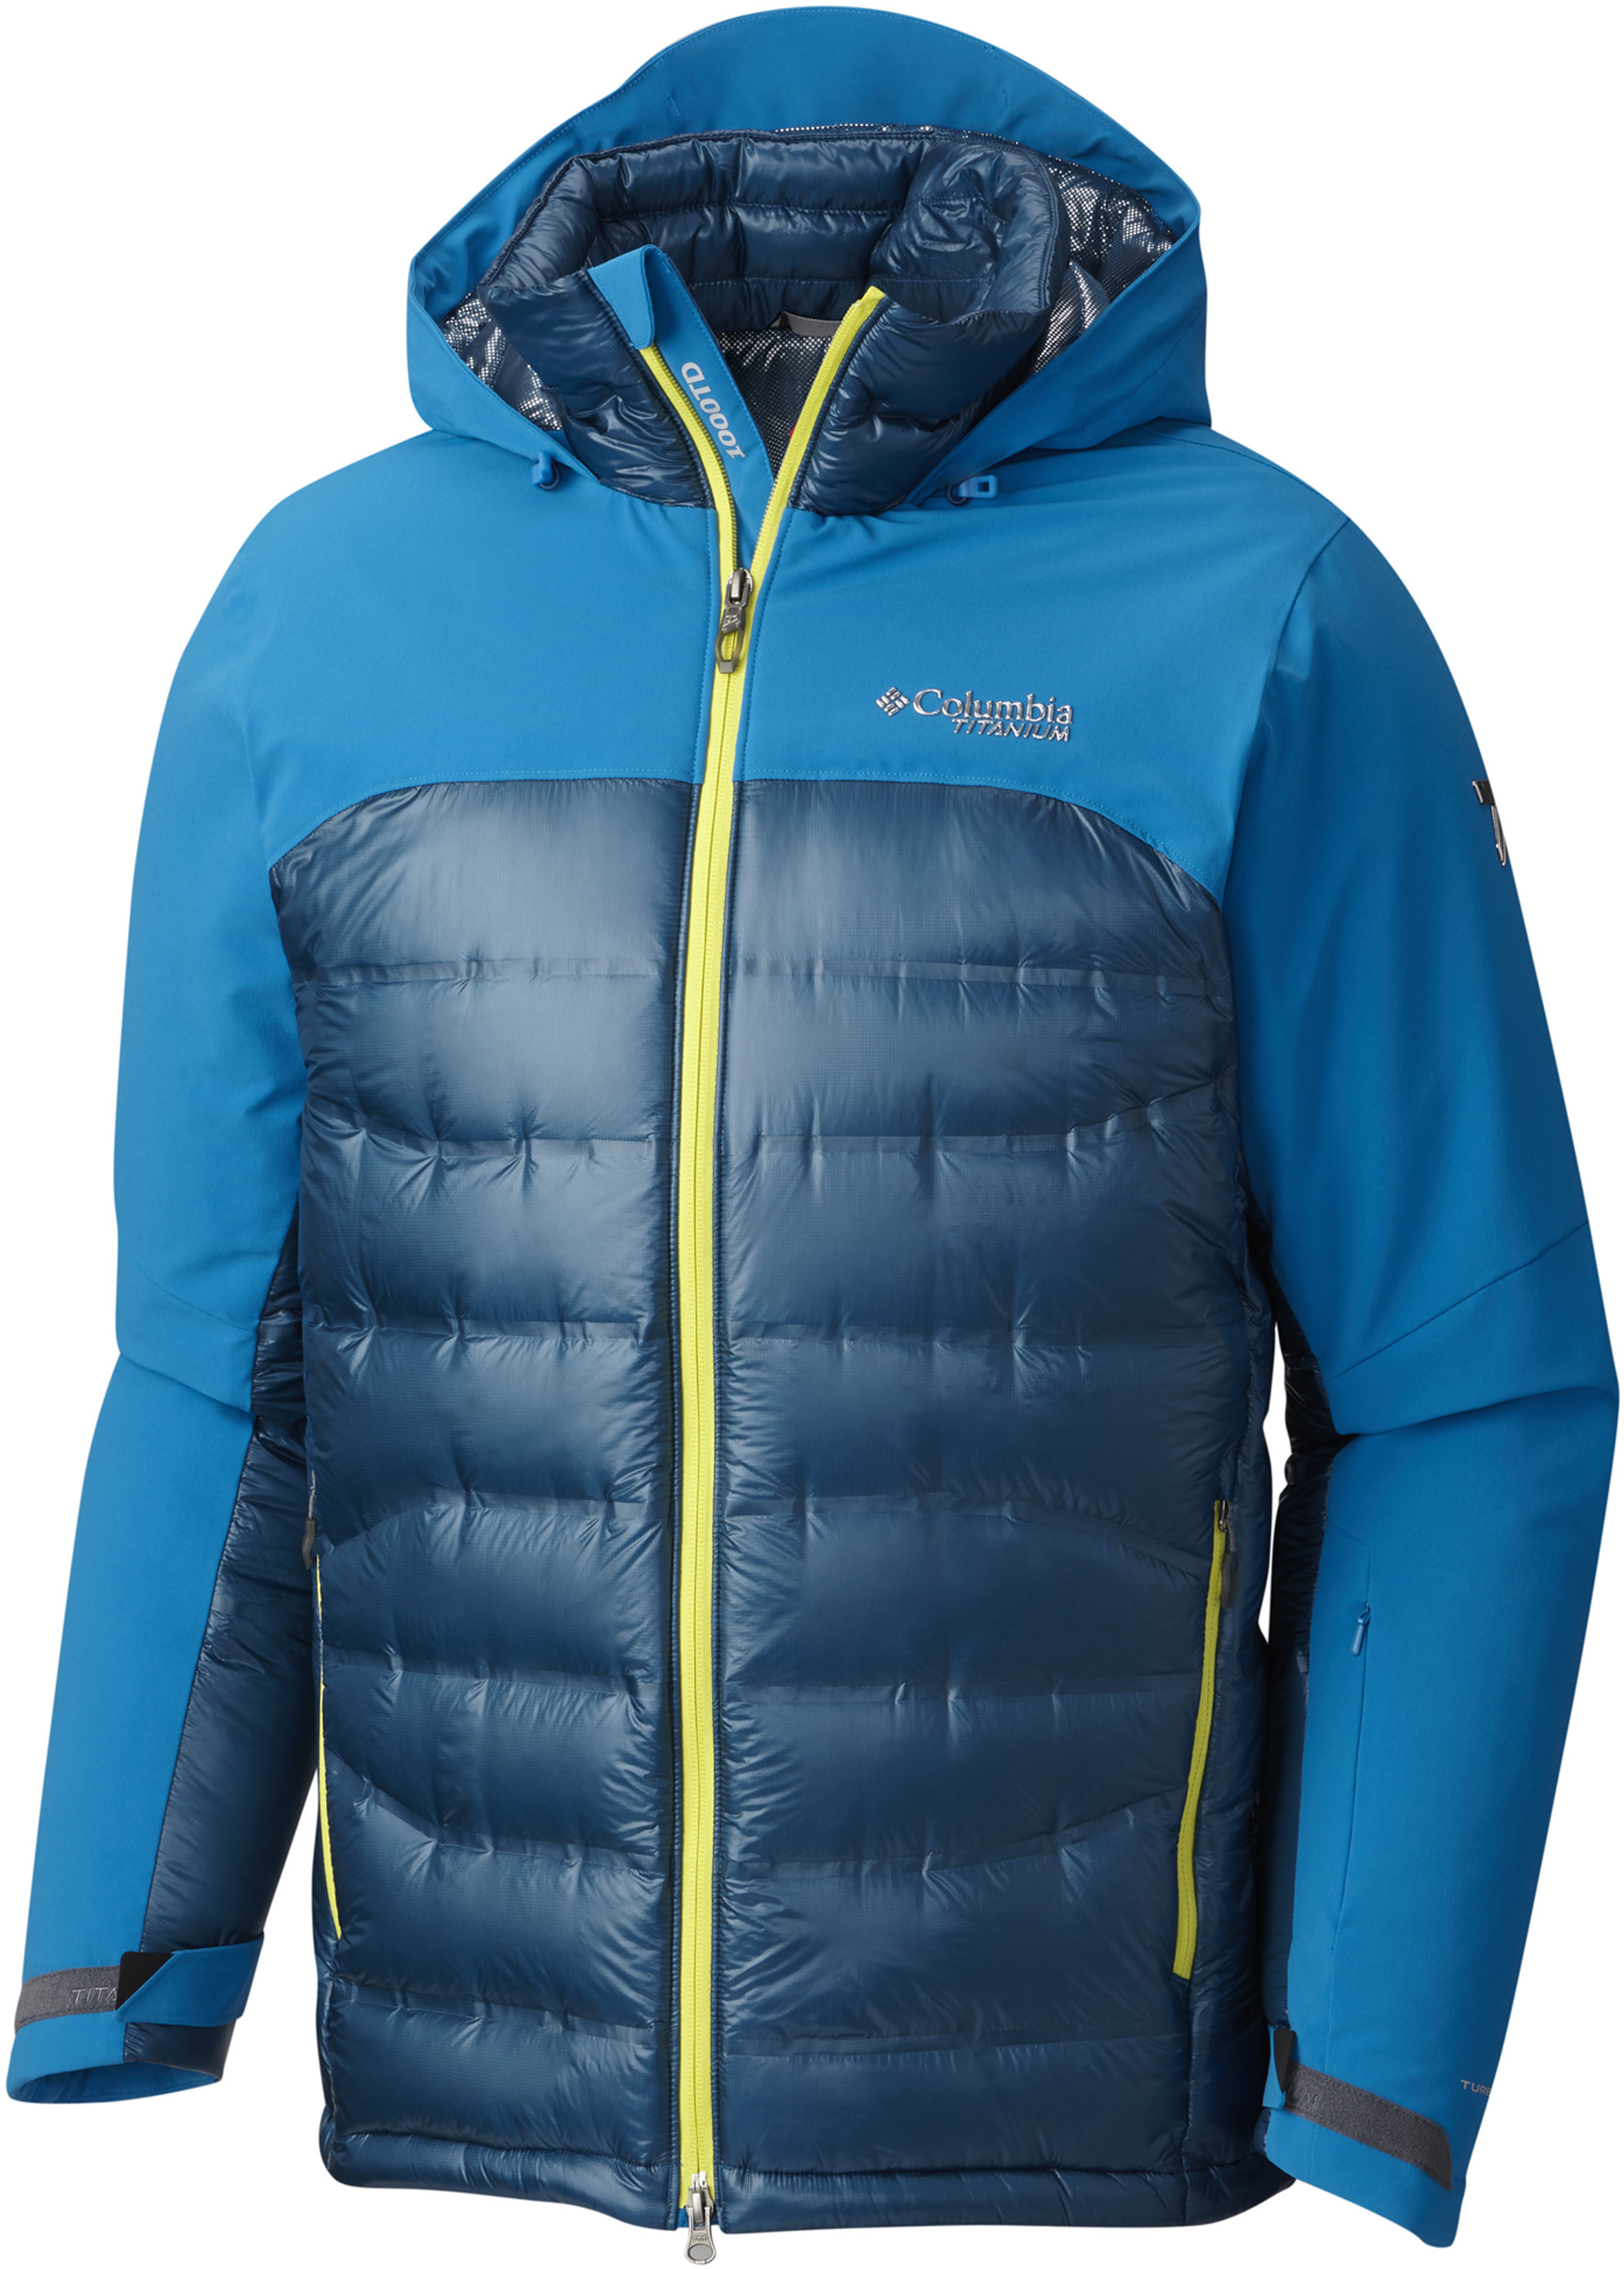 1f8e06f92 Columbia Heatzone 1000 TurboDown II Jacket - Mens 1619811402-XL,  Insulation: Down w/ Free Shipping